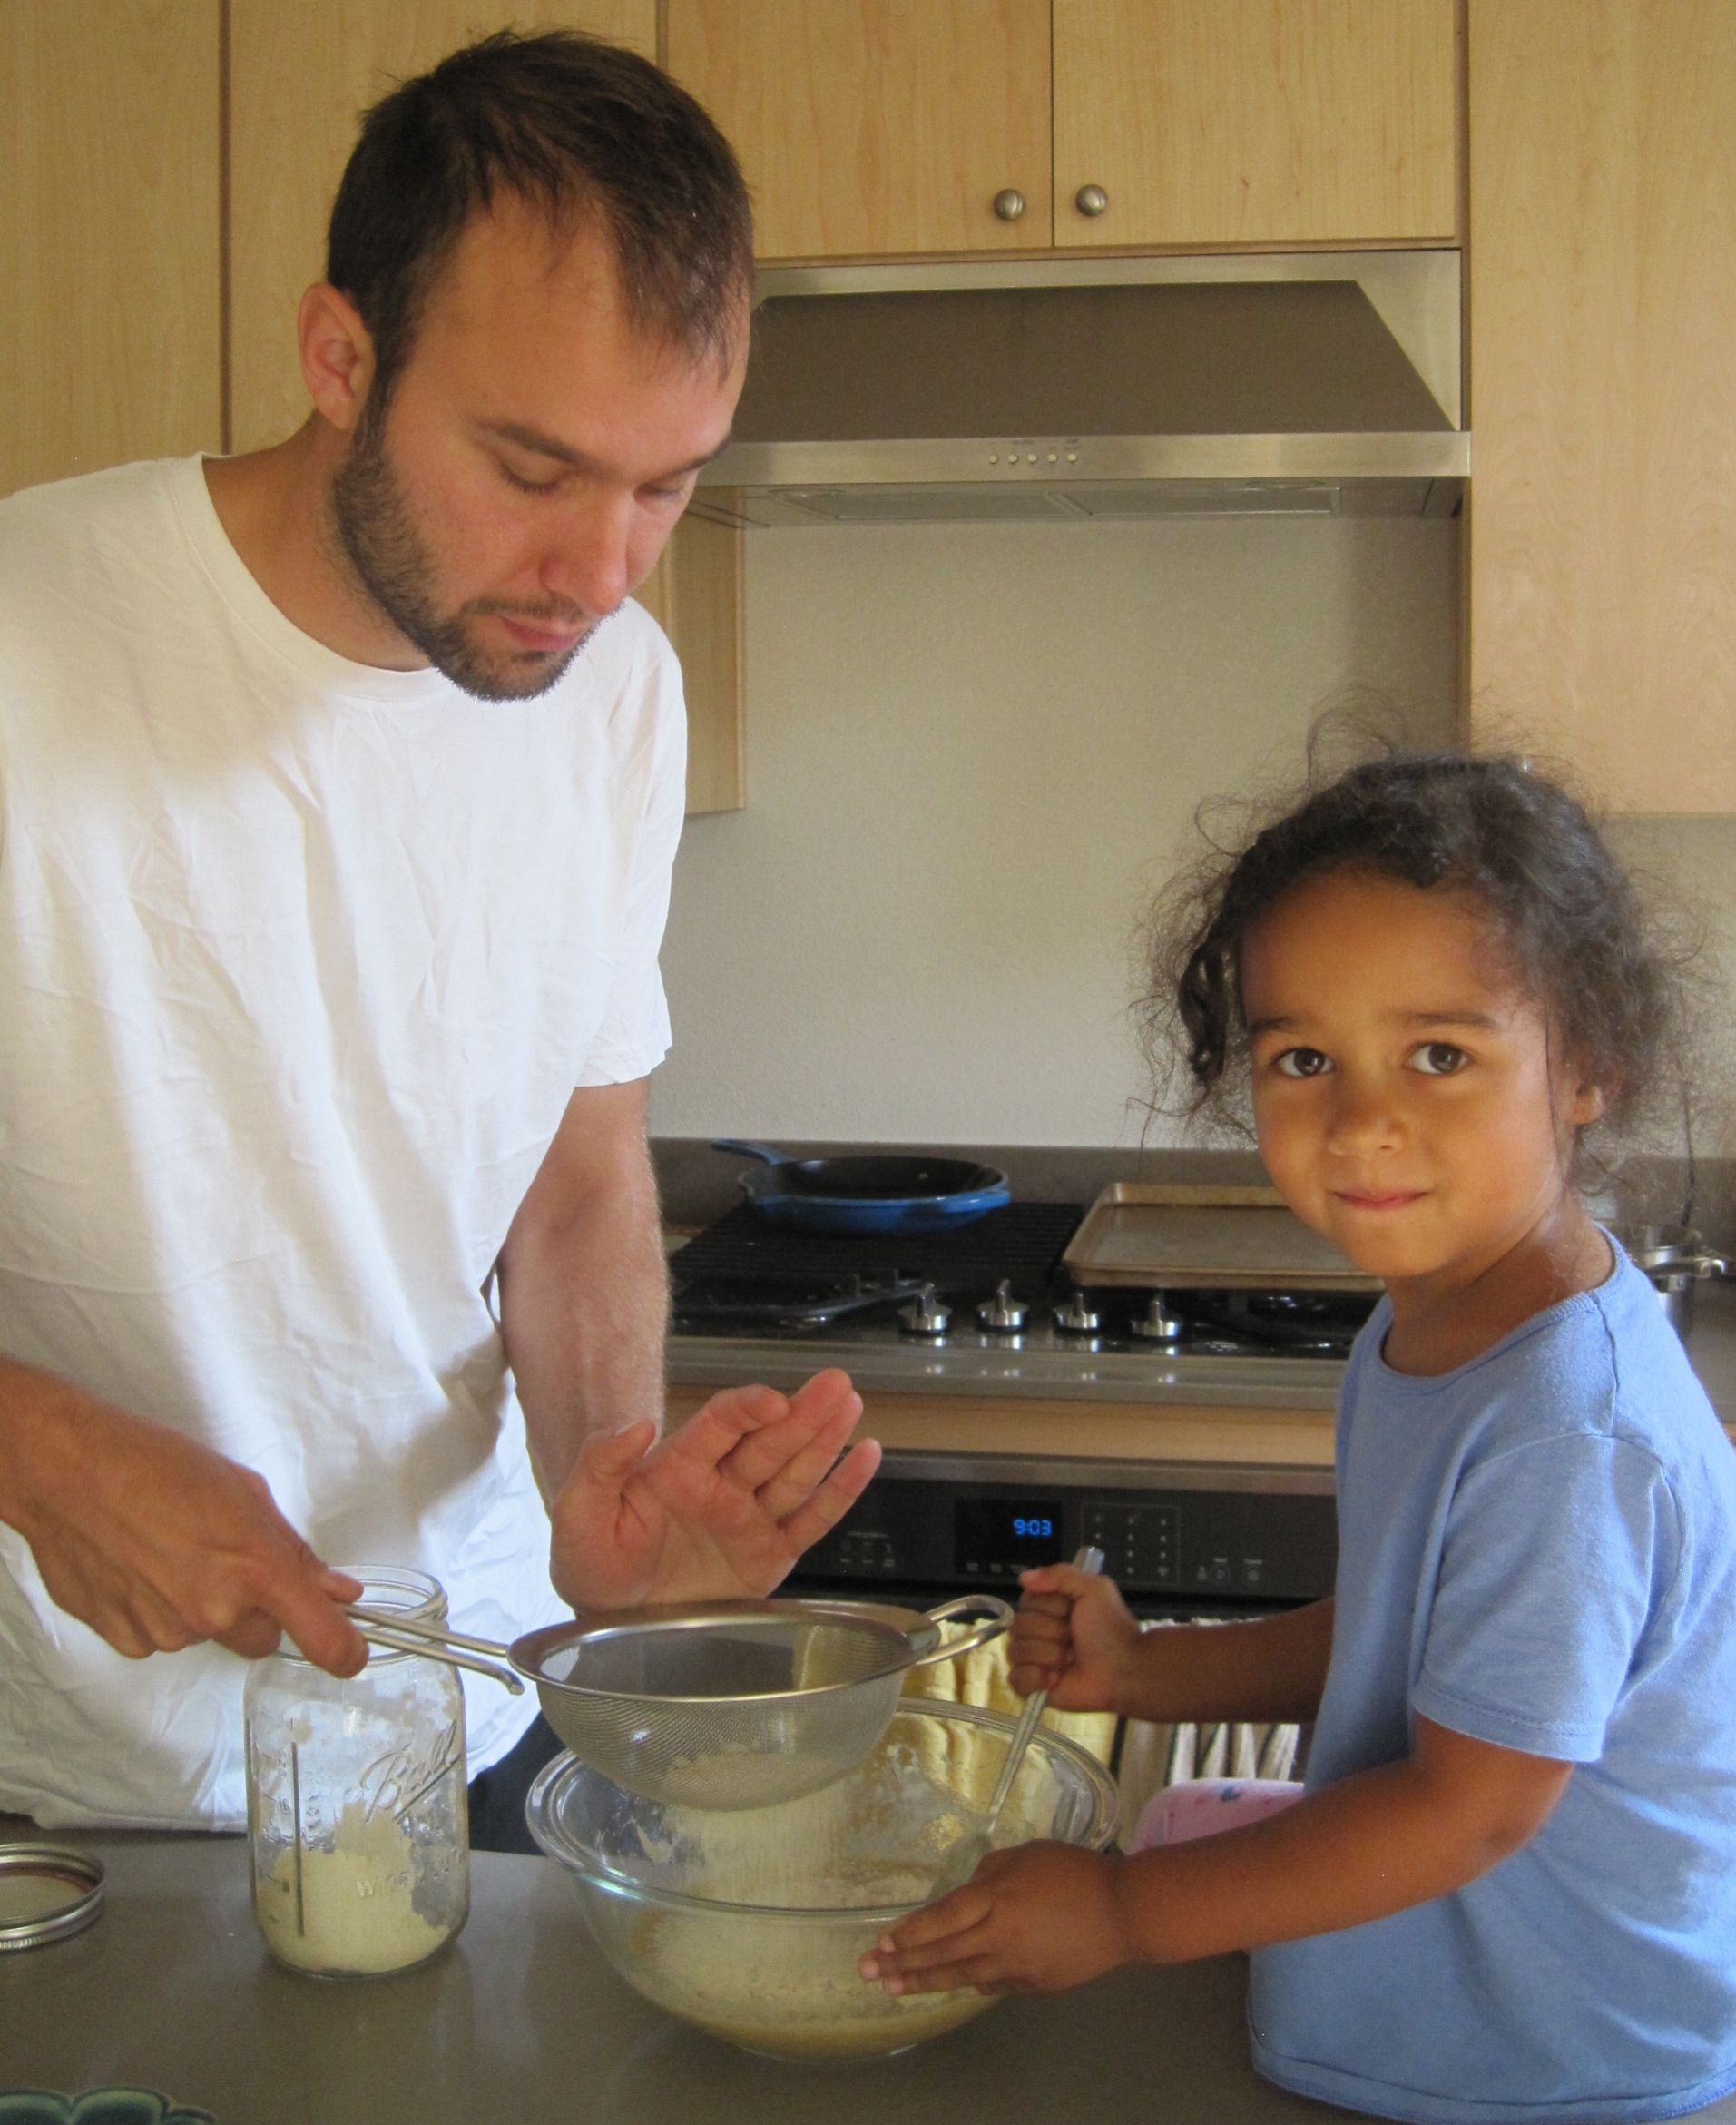 Kids learn about value of food by getting involved